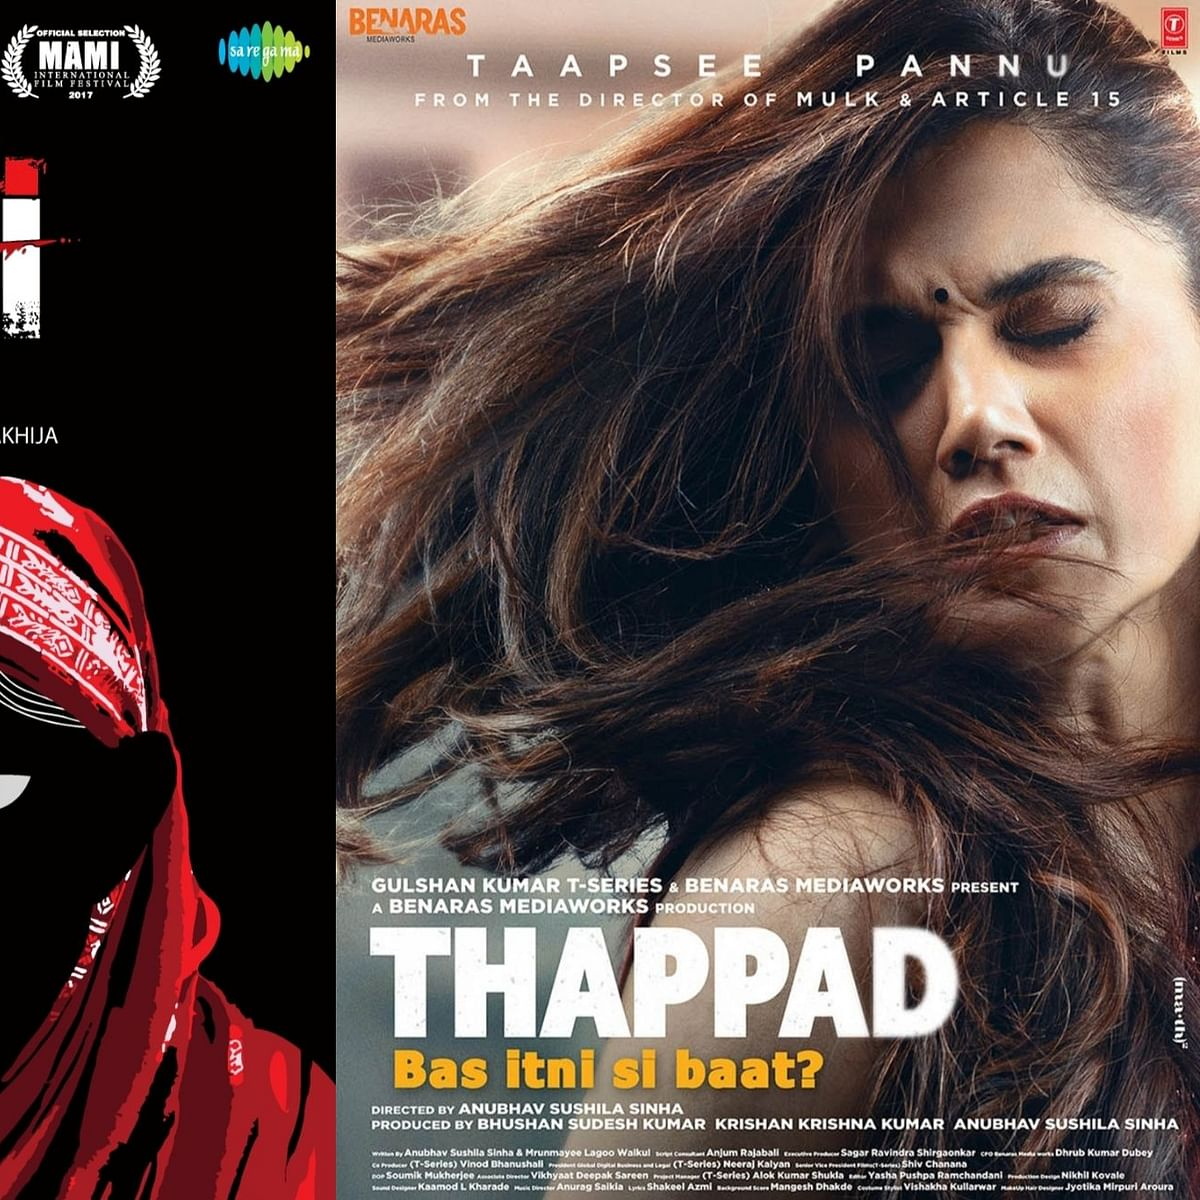 International Women's Day 2021: From 'Thappad' to 'Ajji', powerful women-centric films to watch